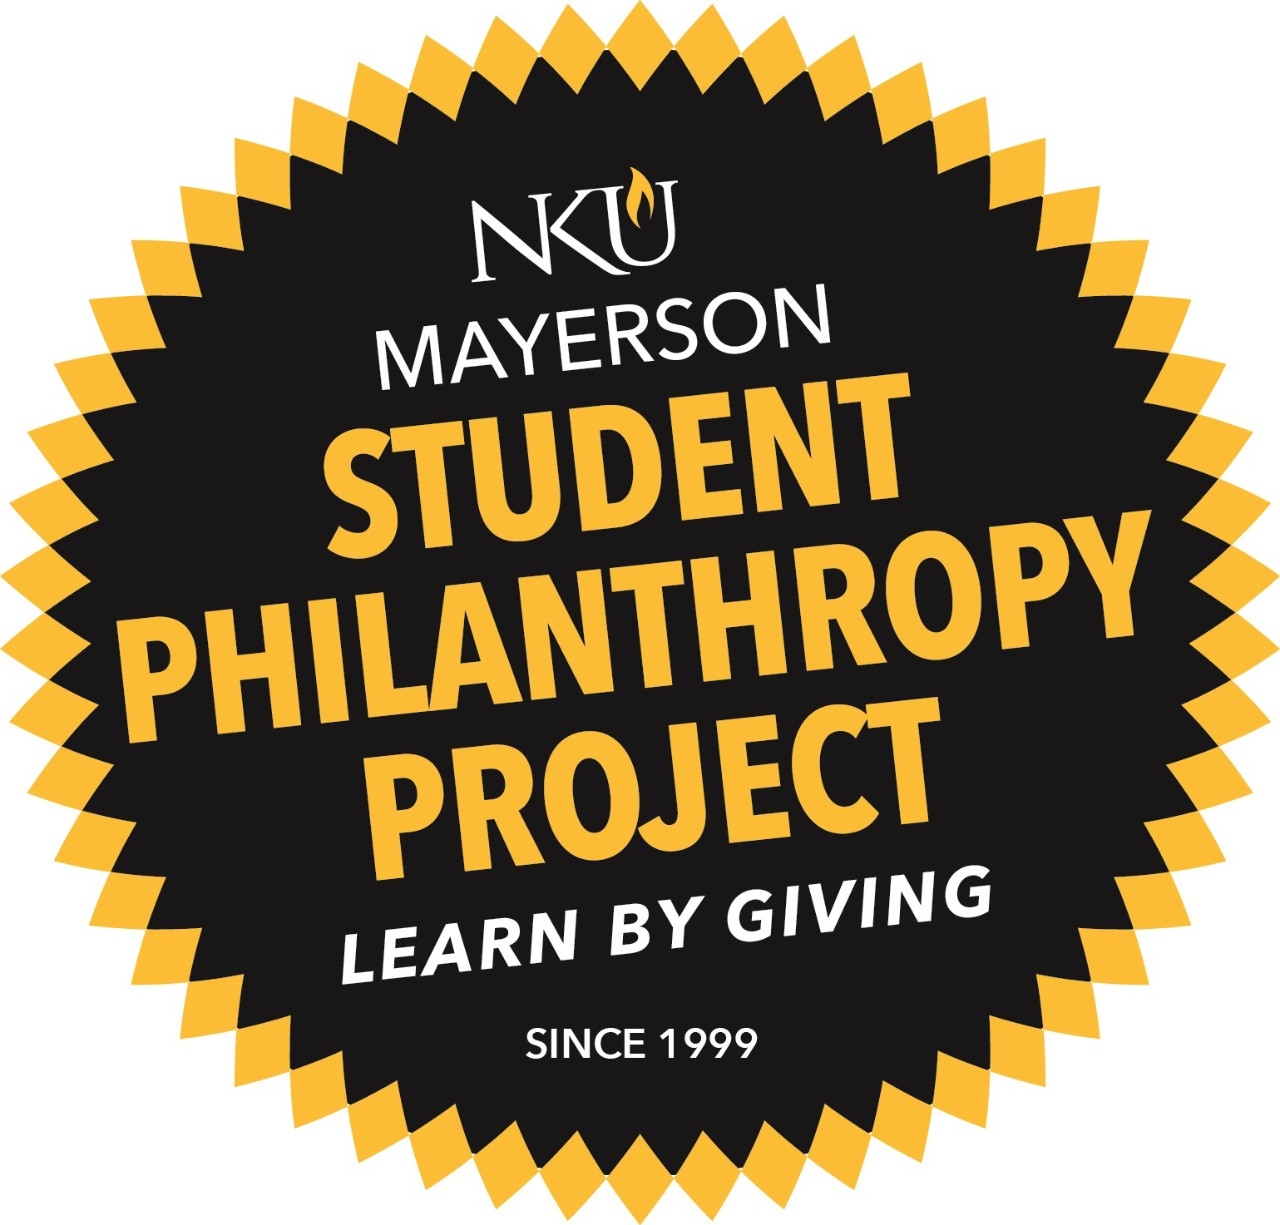 20th Anniversary of Mayerson Student Philanthropy Project